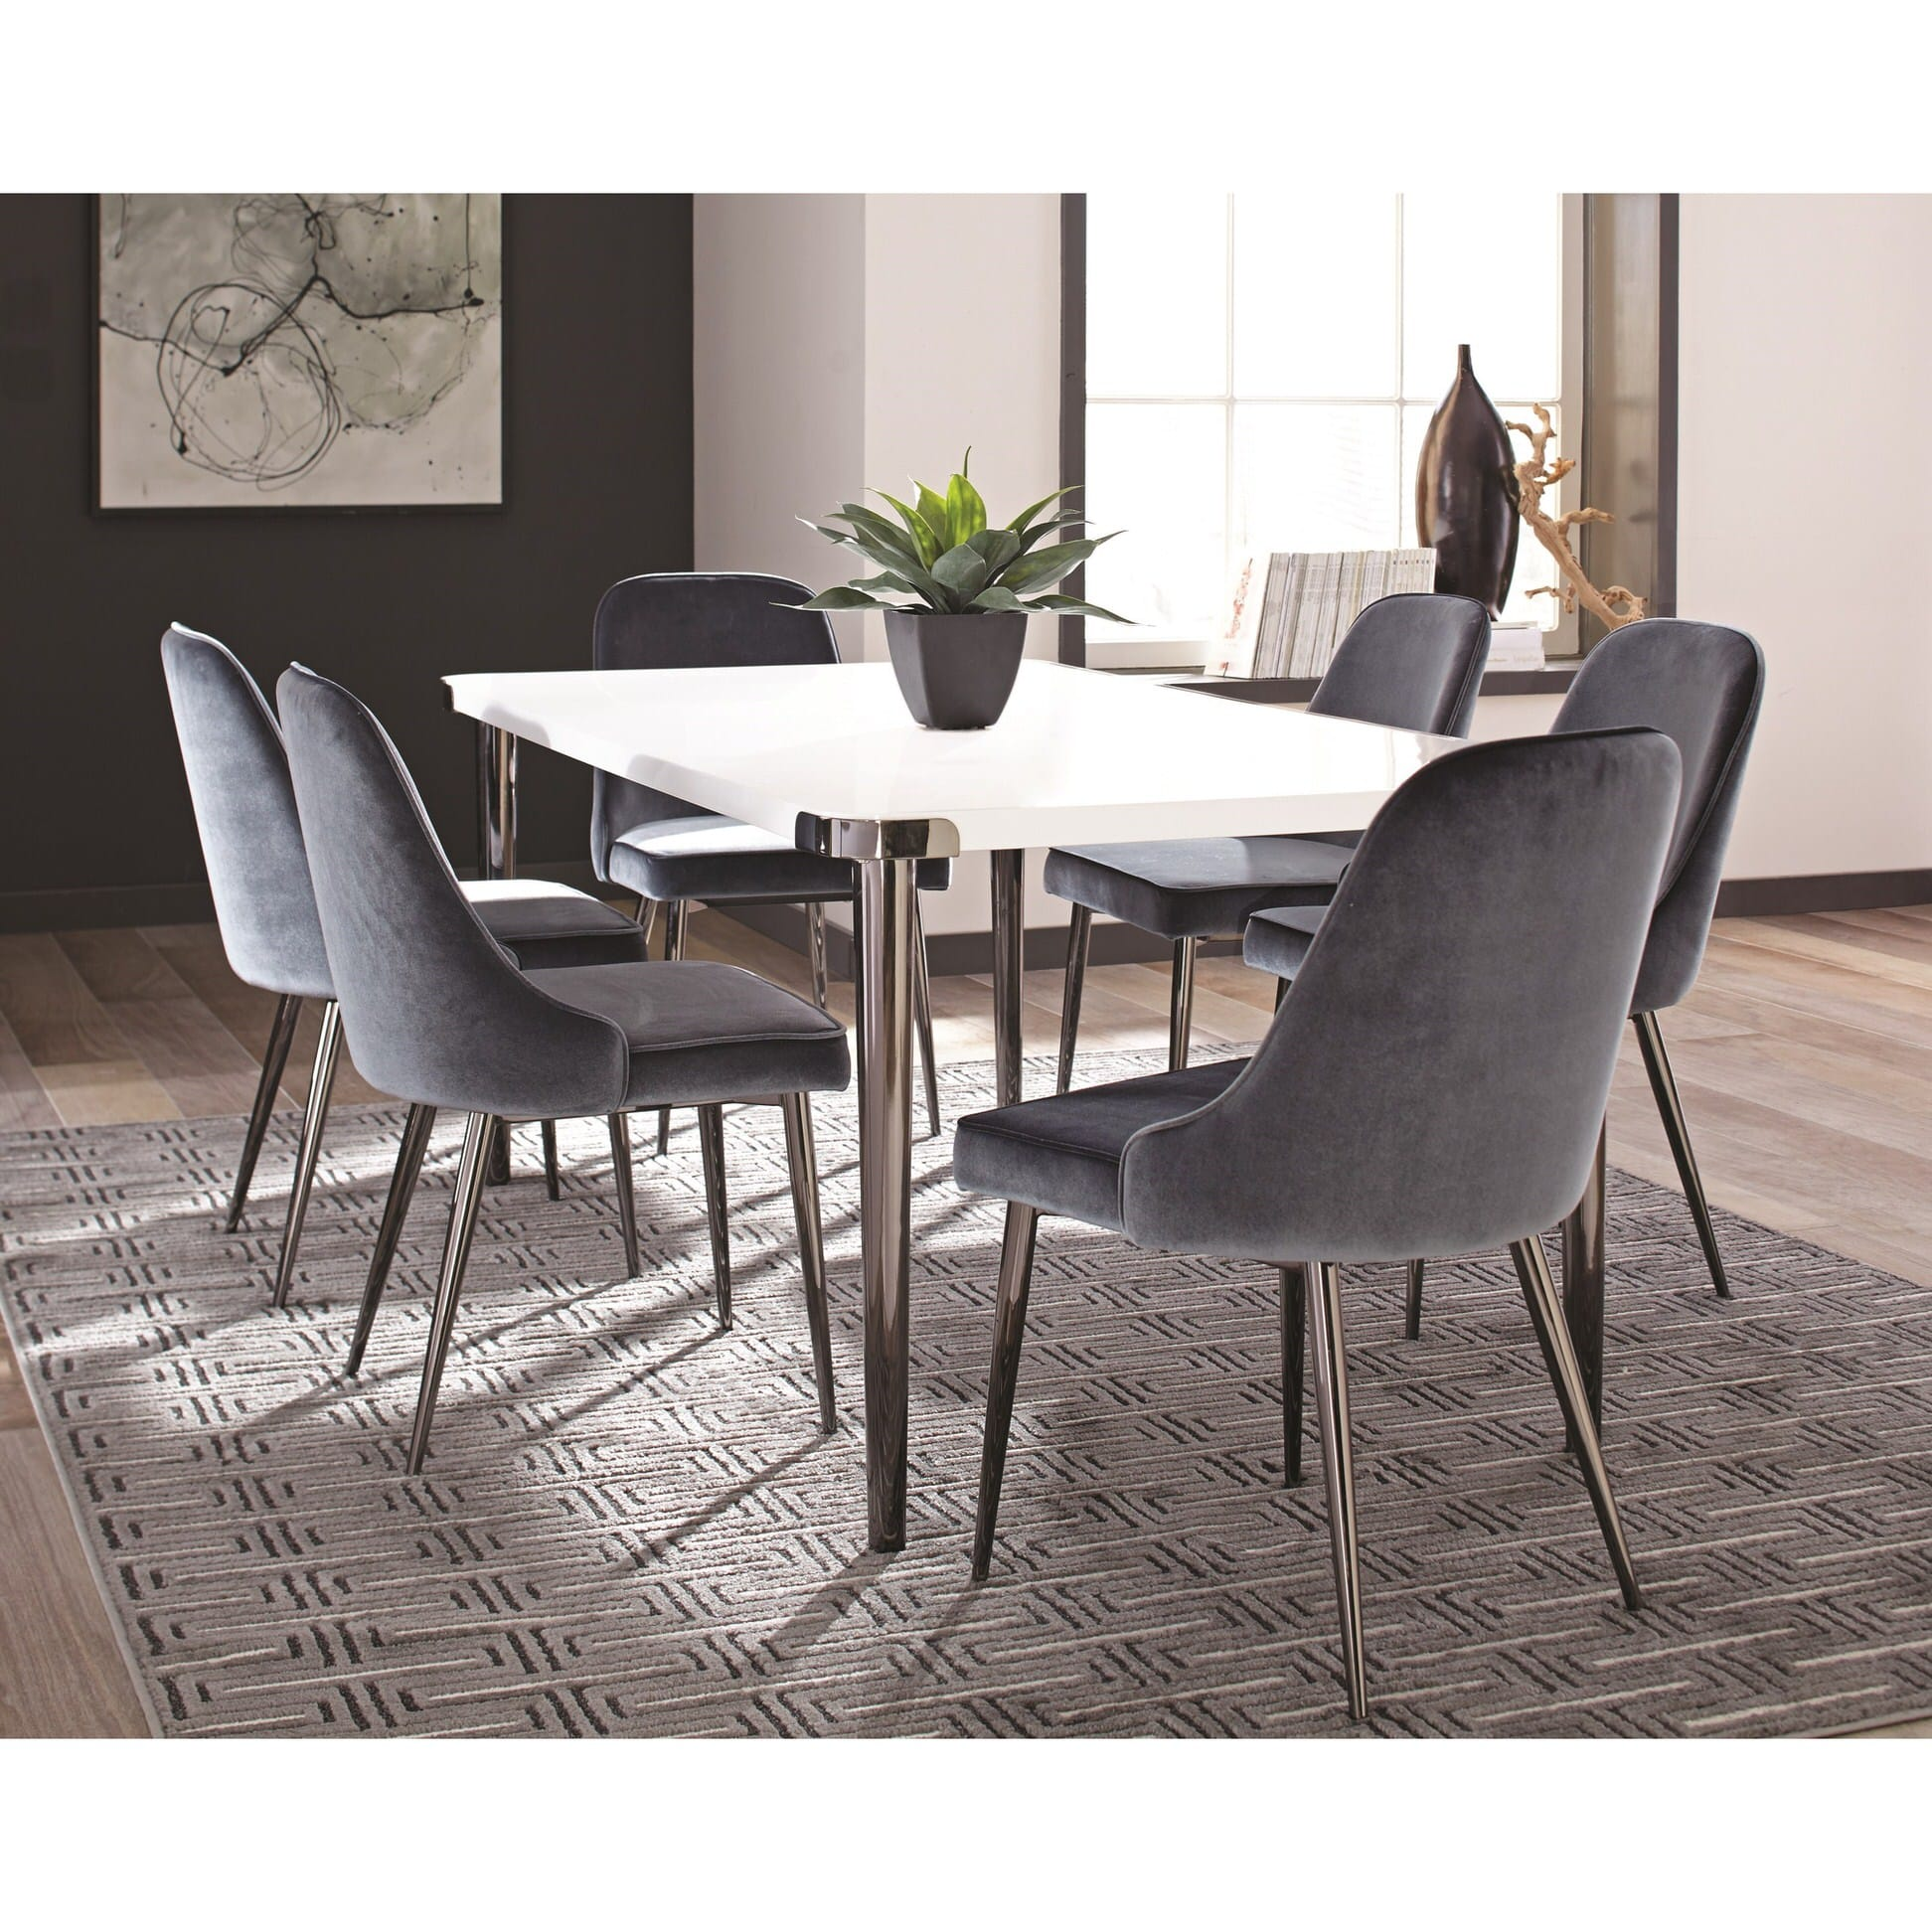 light chic bentwood luxury shabby upholstered dining s chairs blue chair best room navy of